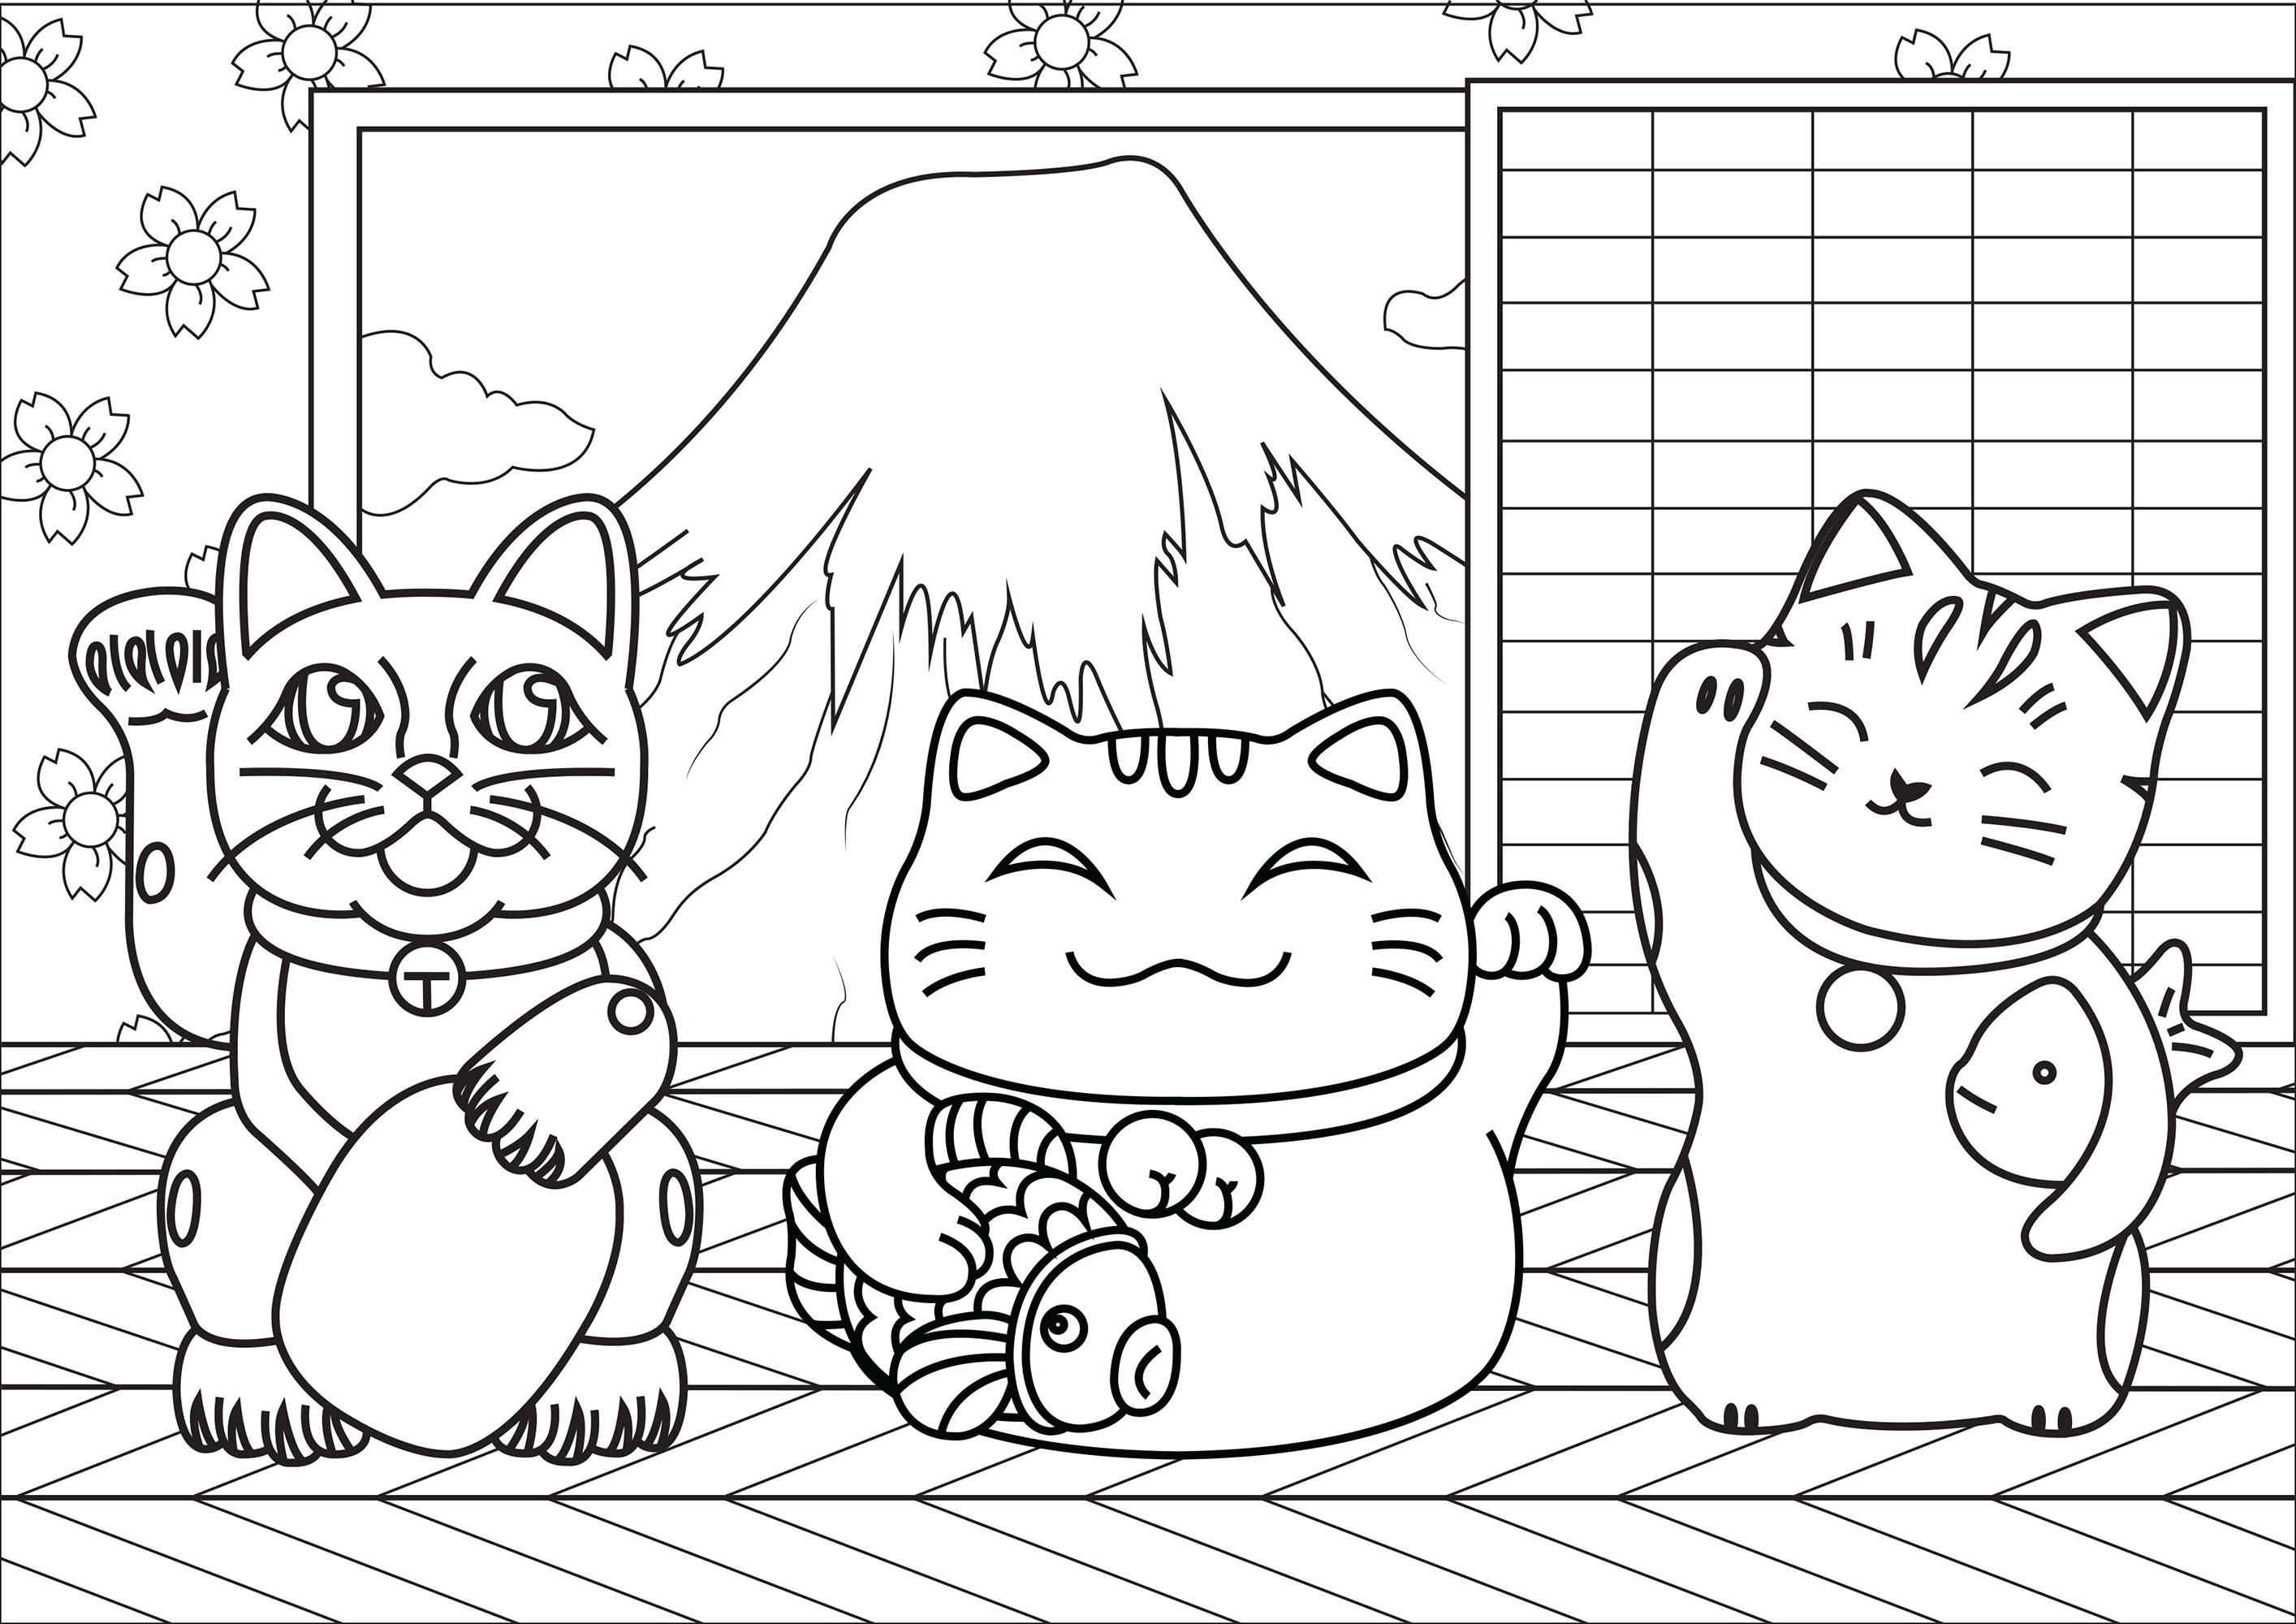 Maneki Neko in front of Japan's Mount Fuji (simple version)